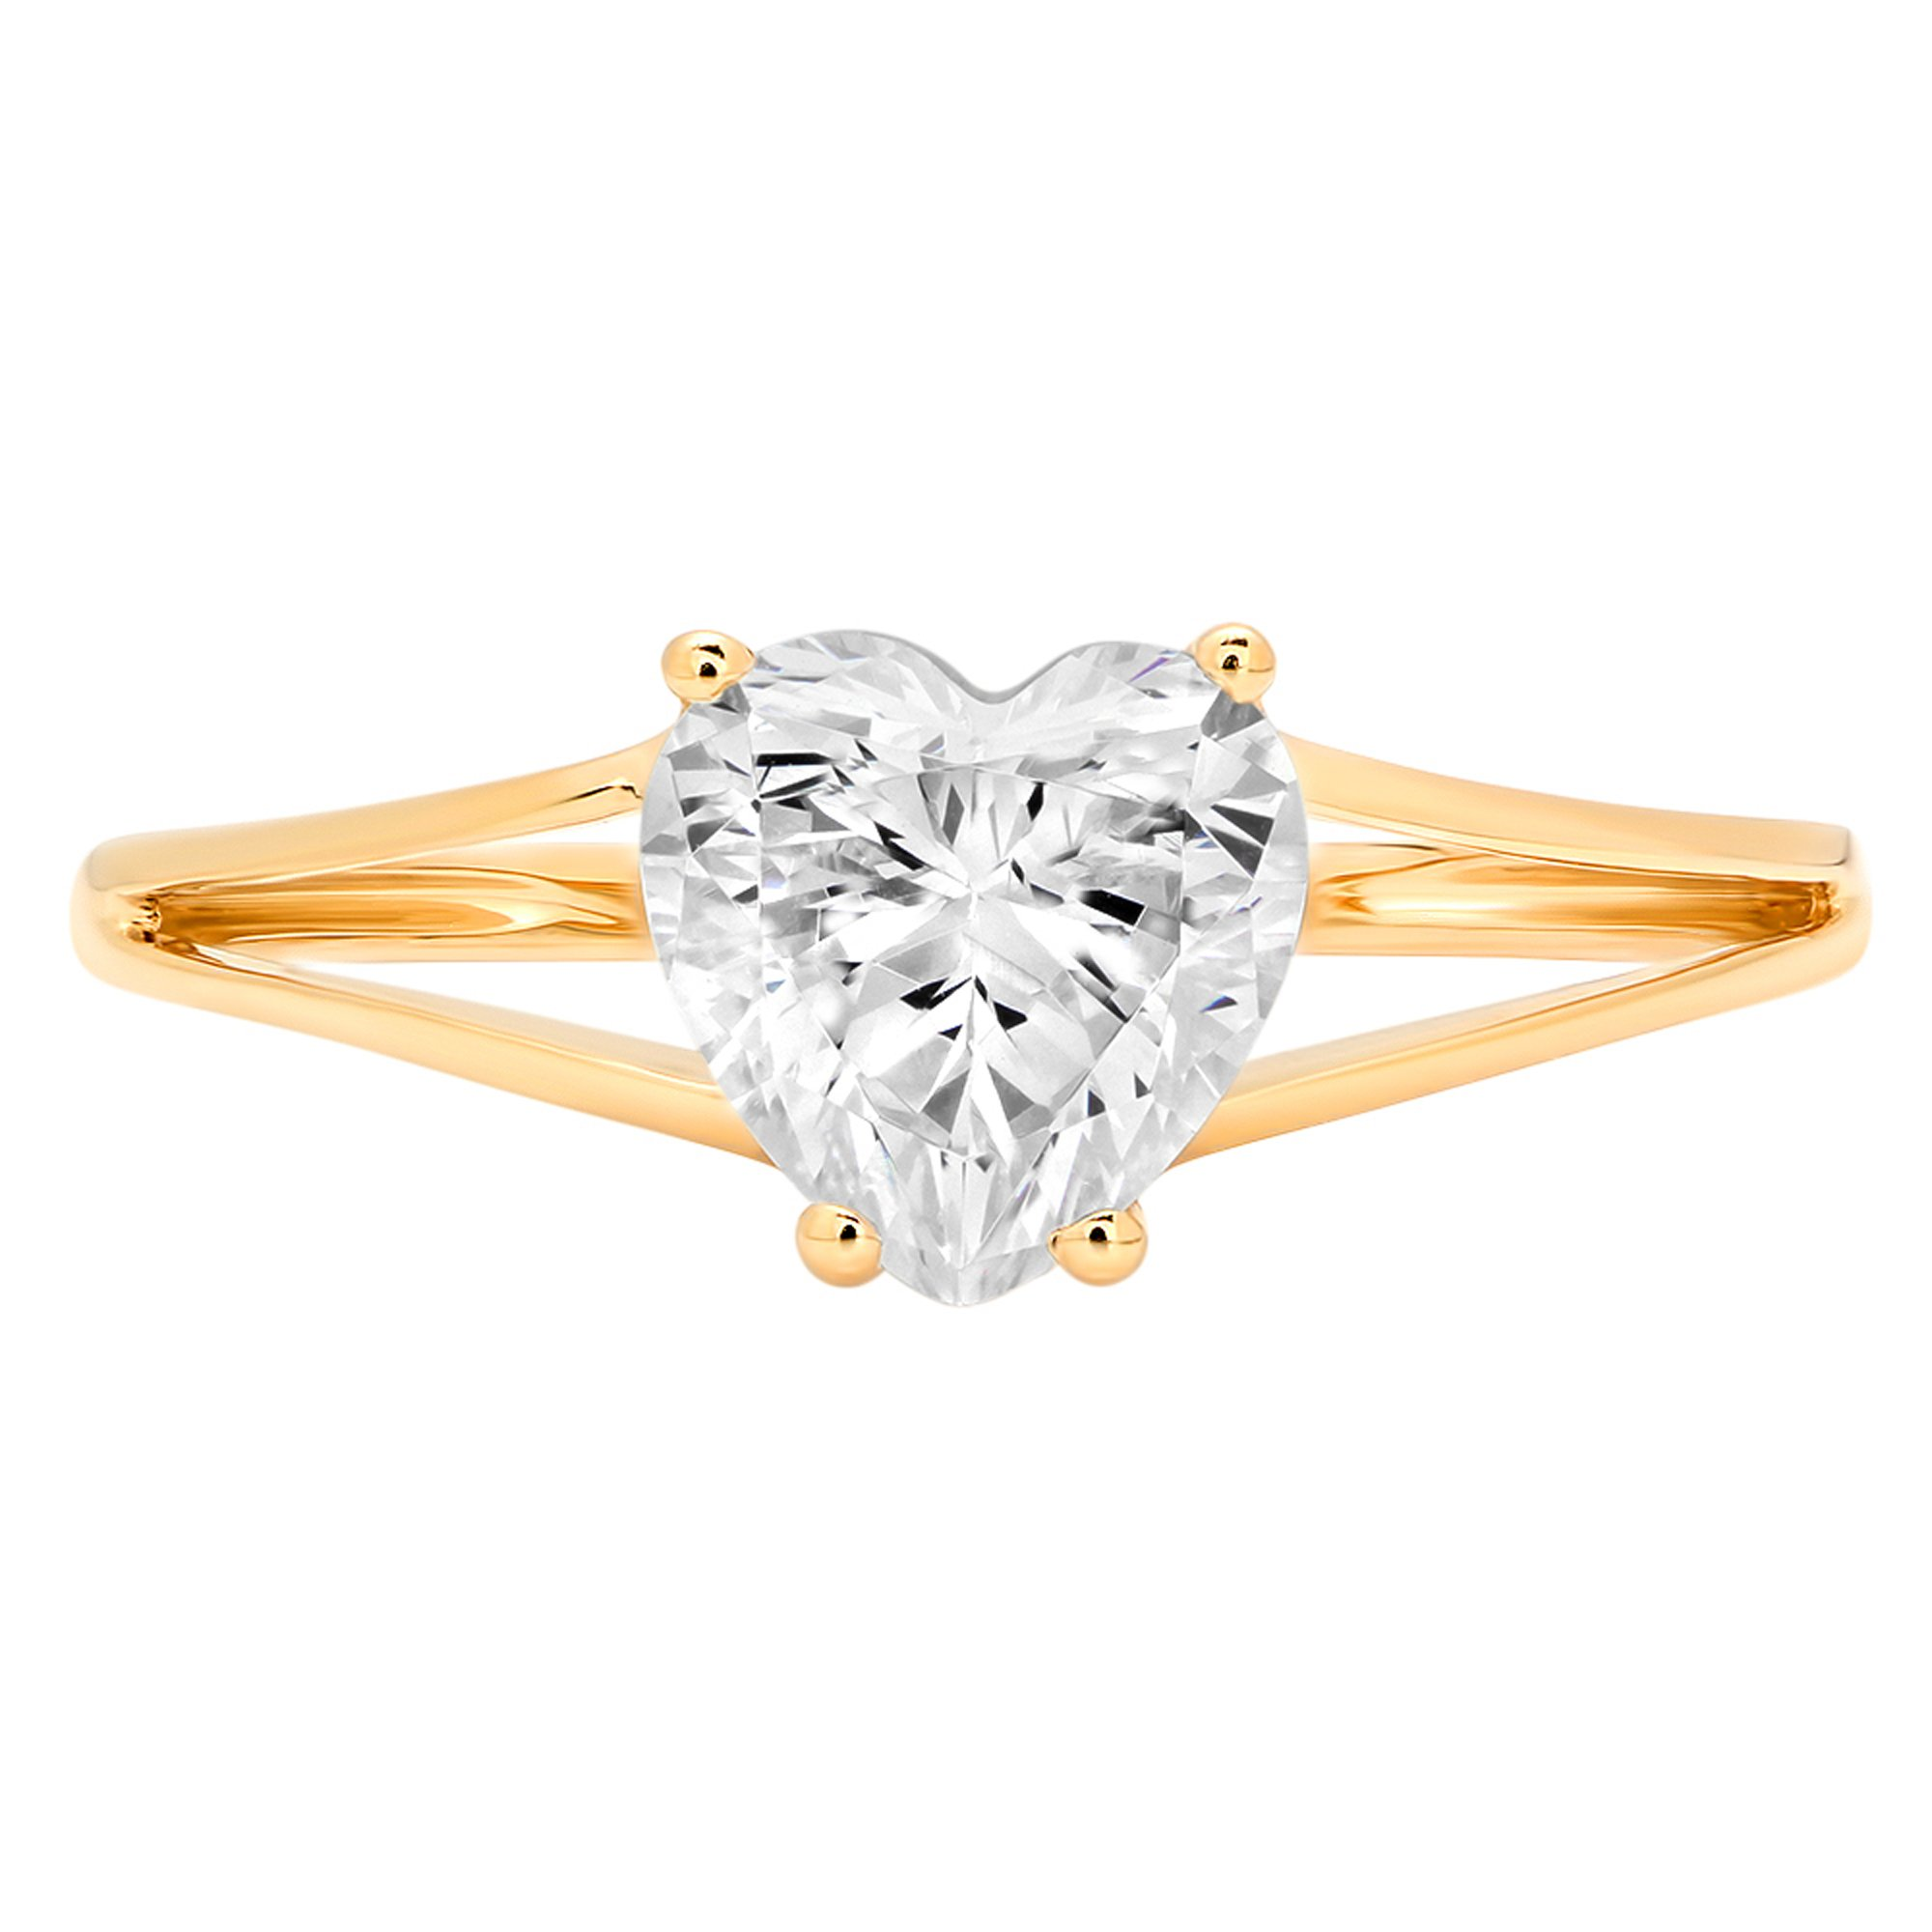 1.70 ct Brilliant Heart Cut Solitaire Engagement Wedding Bridal Promise Ring in Solid 14k Yellow Gold, Size 7.75 Clara Pucci